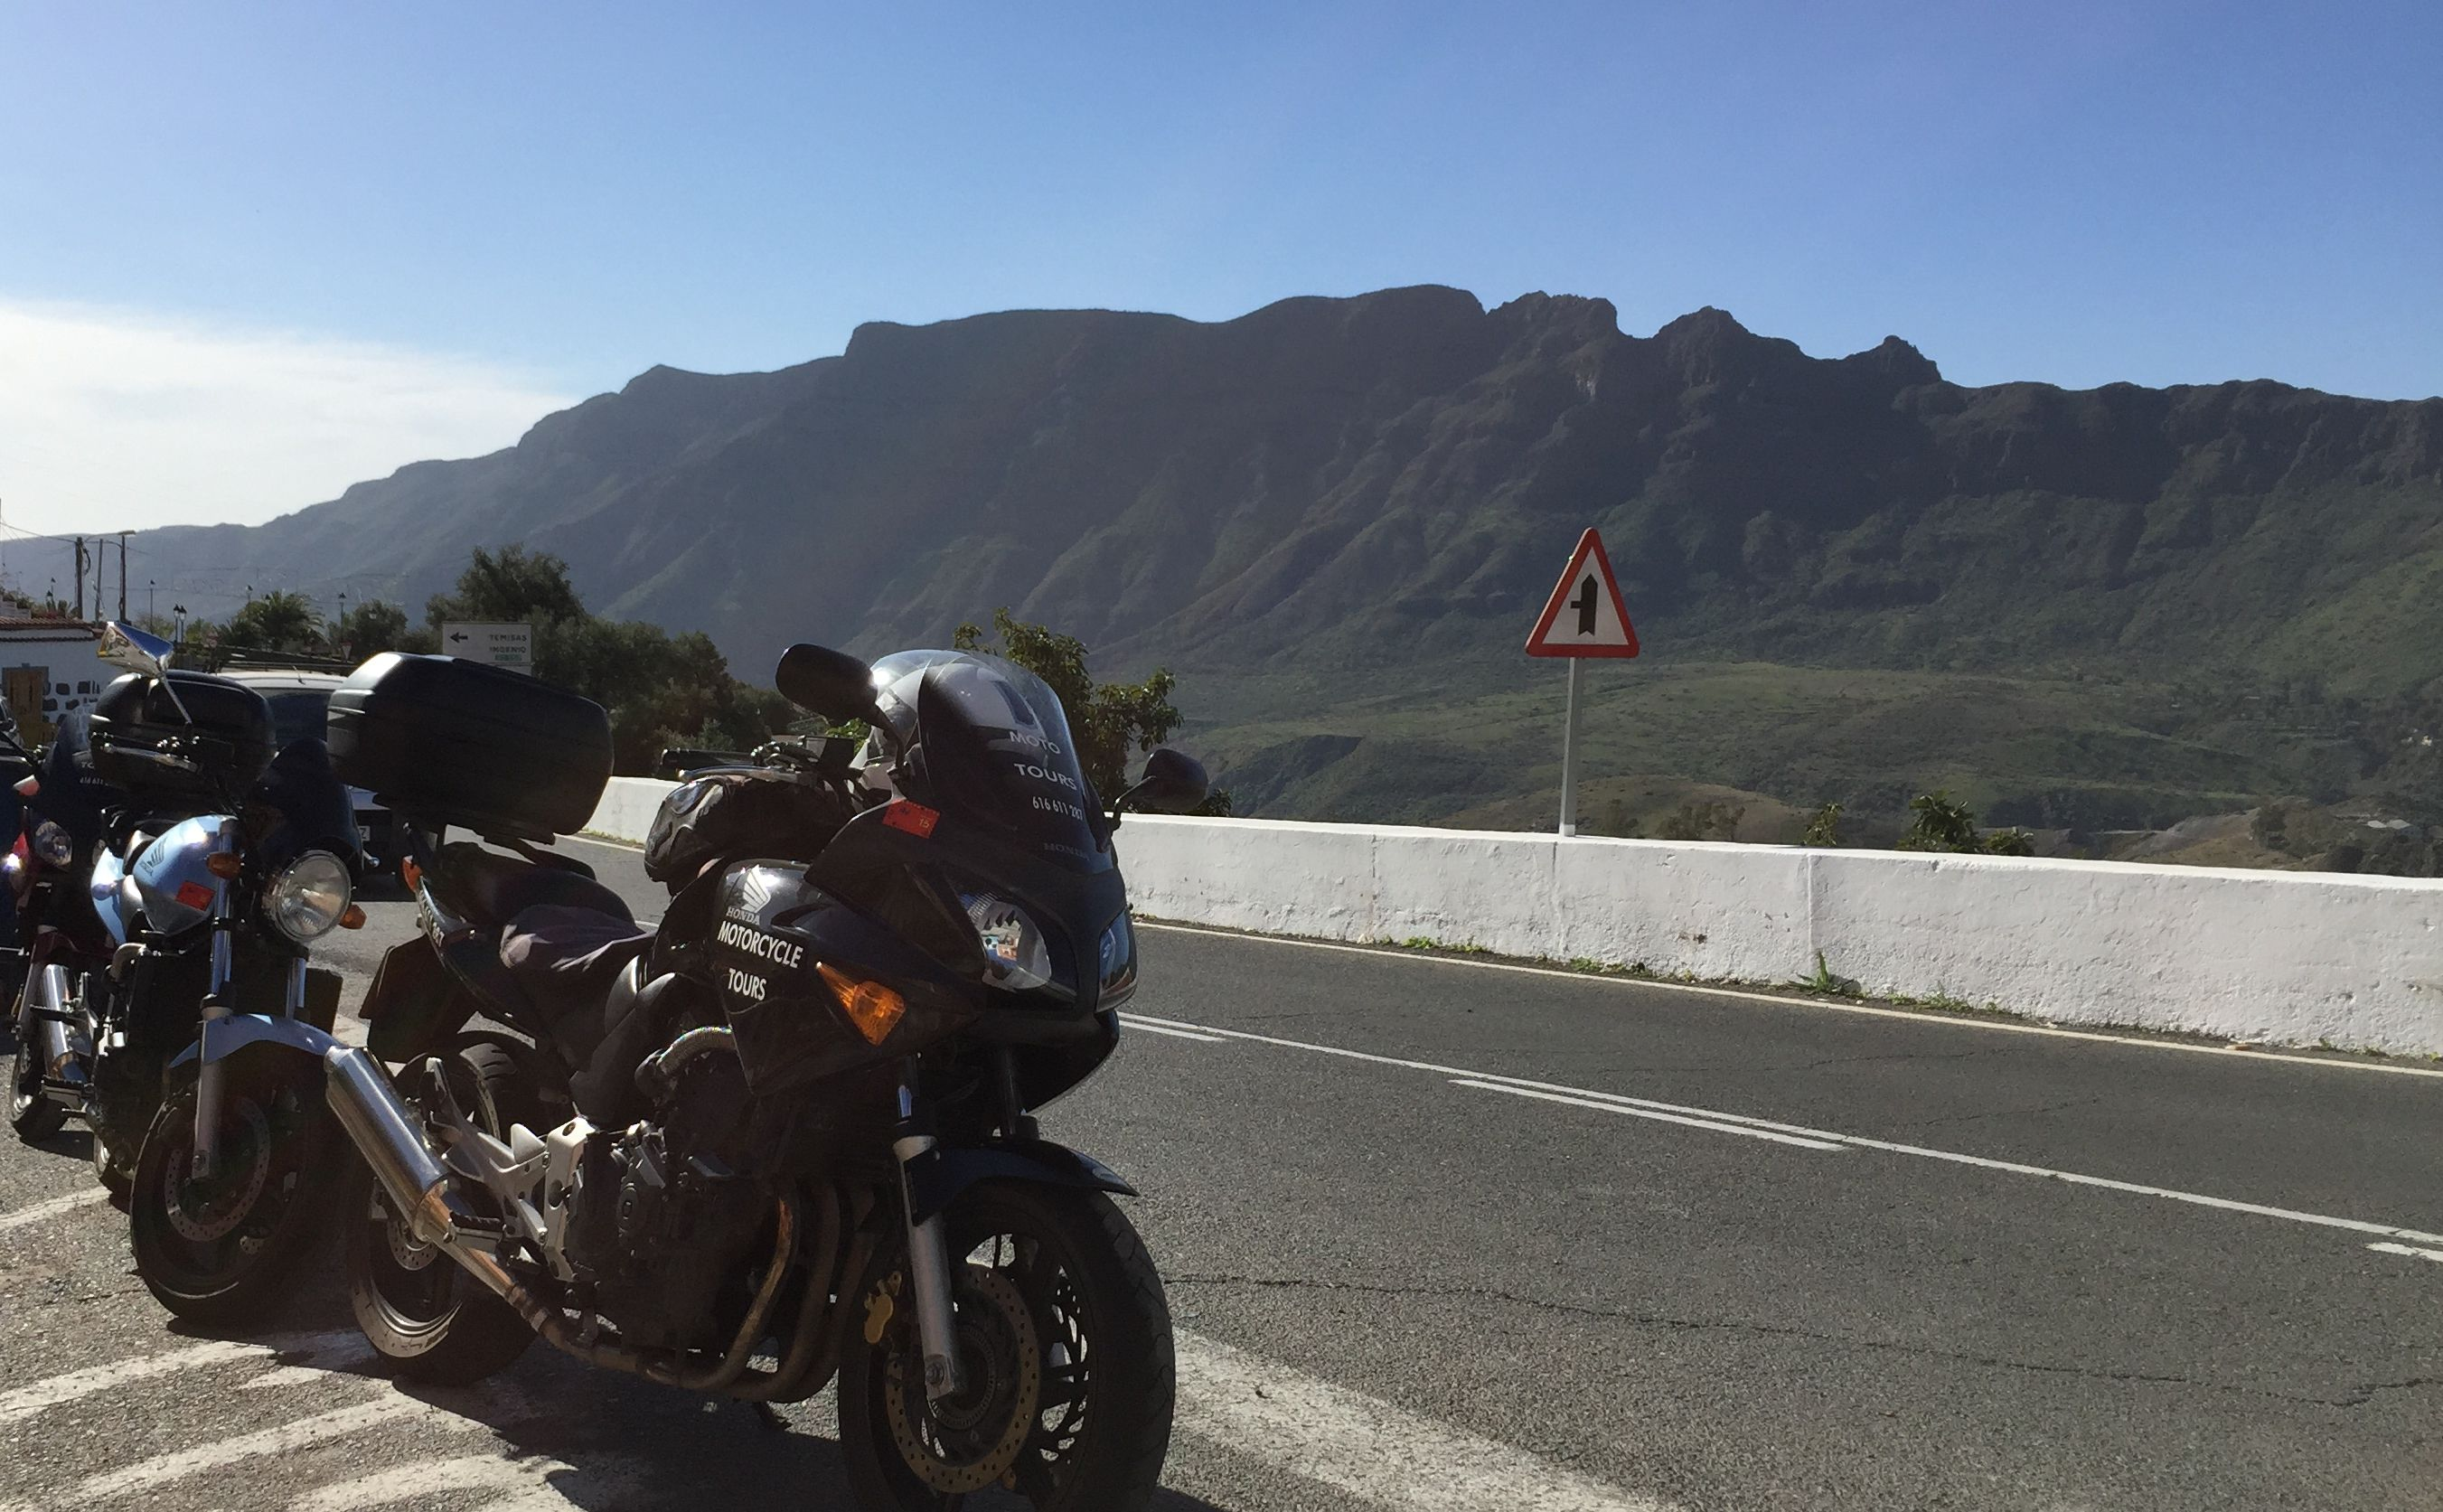 Various bikes, ideal for this terrain, light agile but powerful enough for the mountain